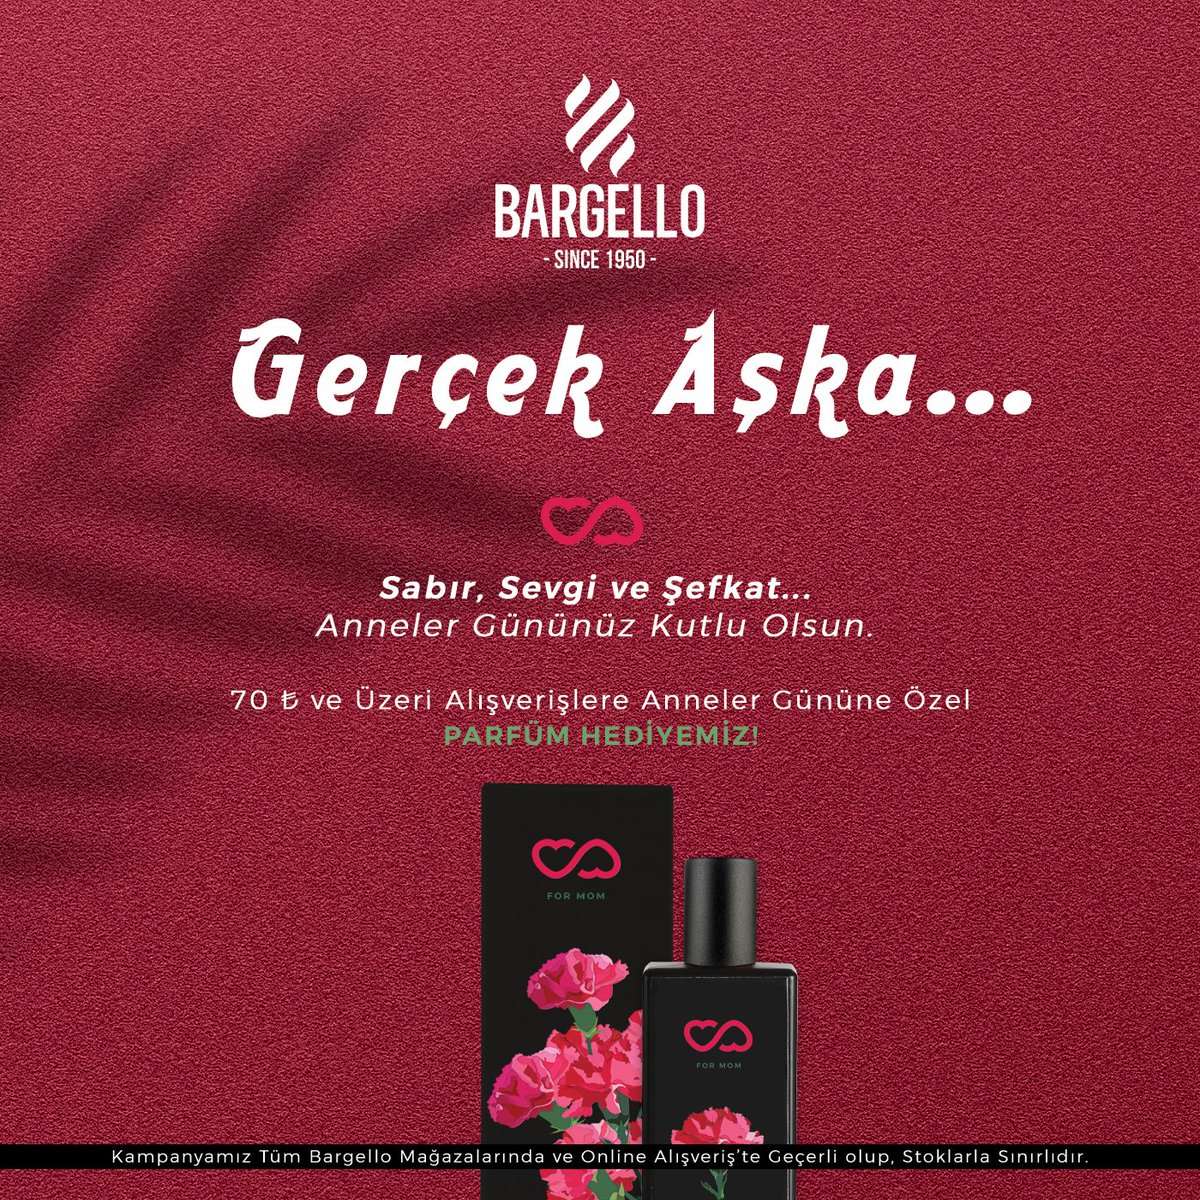 Bargello Perfume At Bargelloperfume Twitter